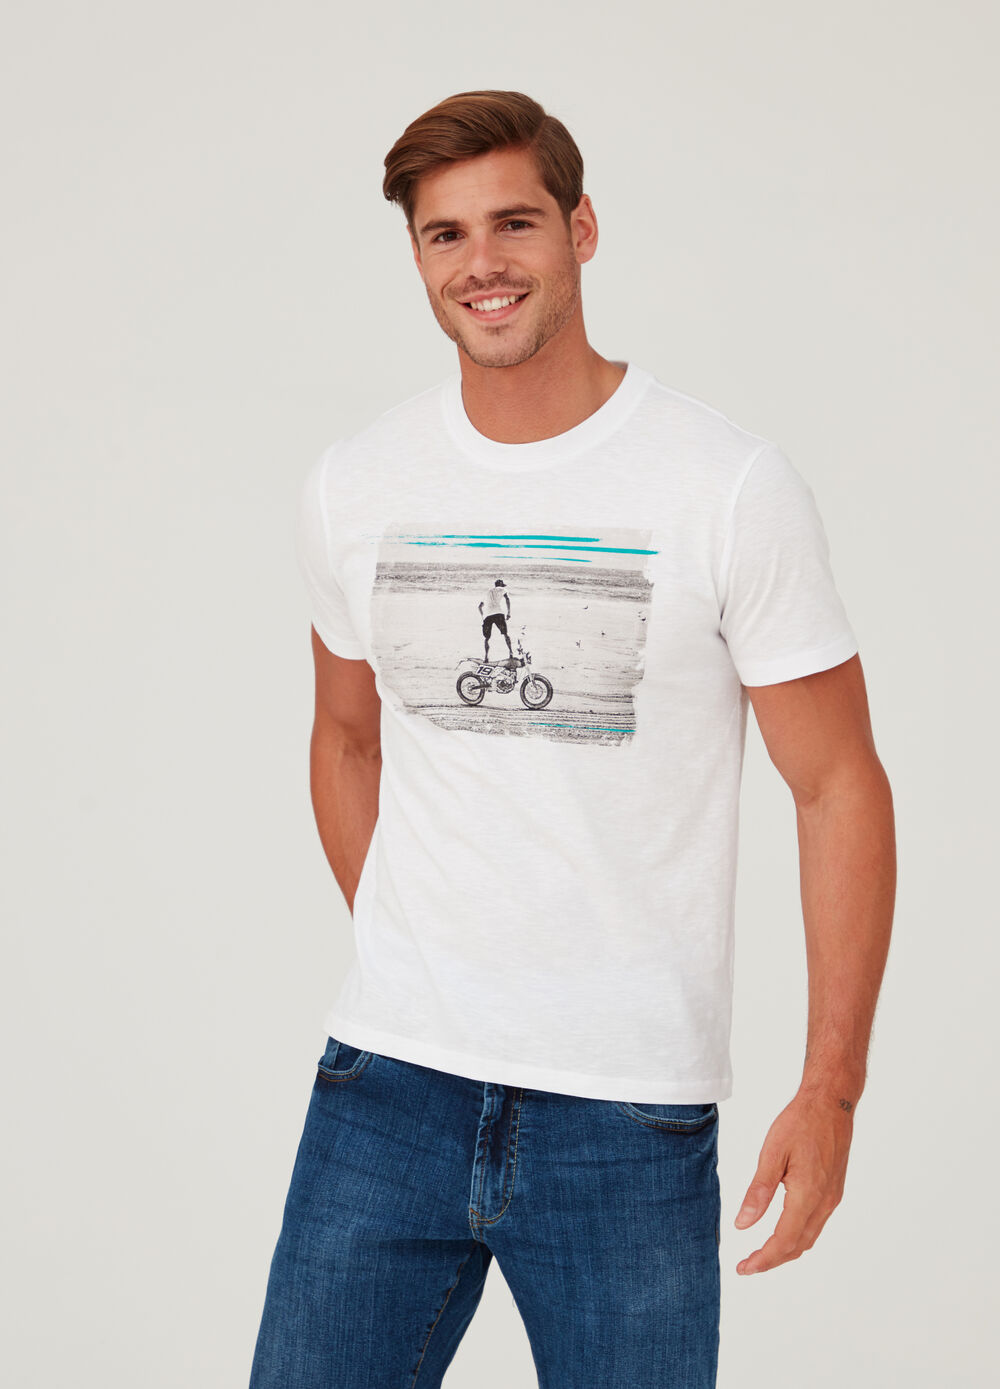 T-shirt in 100% cotton jersey with print